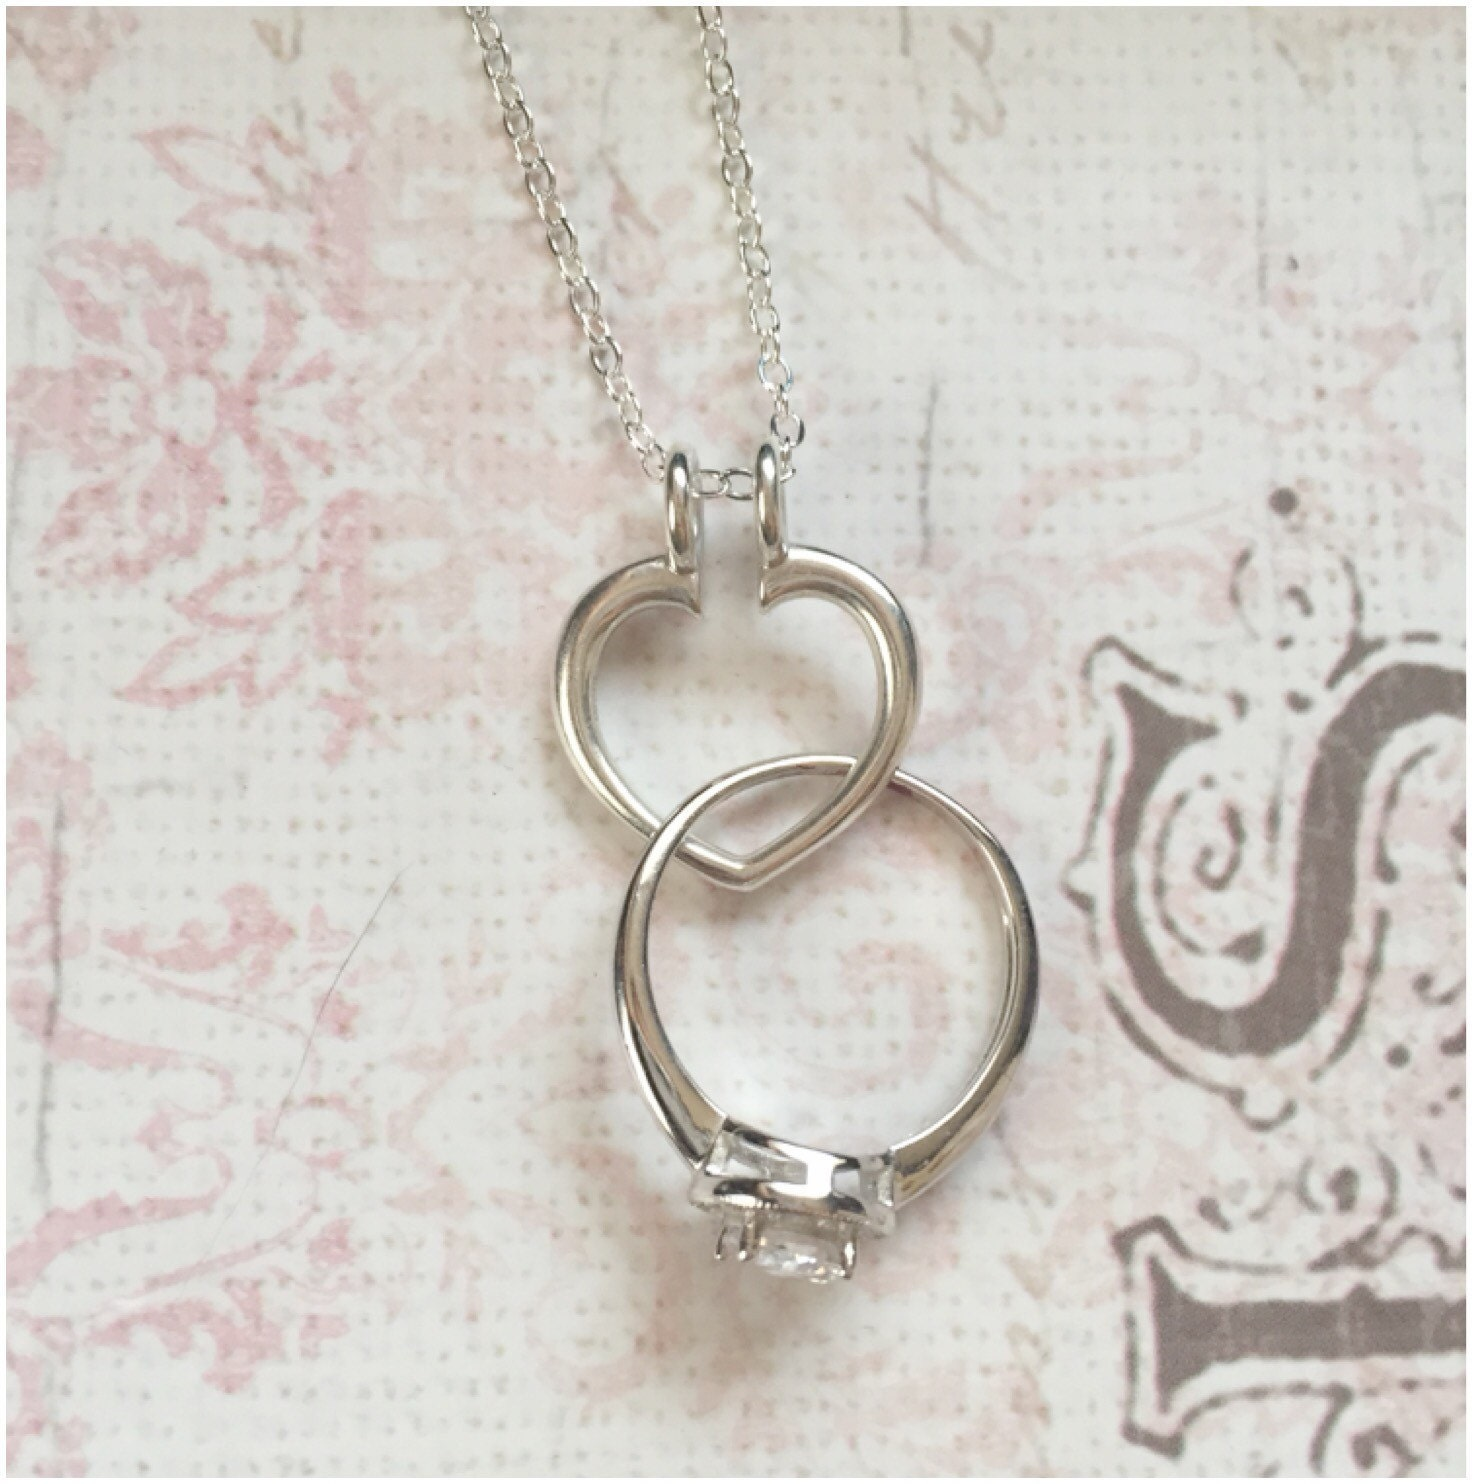 Silver Ring Holder Necklace Open Heart Ring Holder Necklace